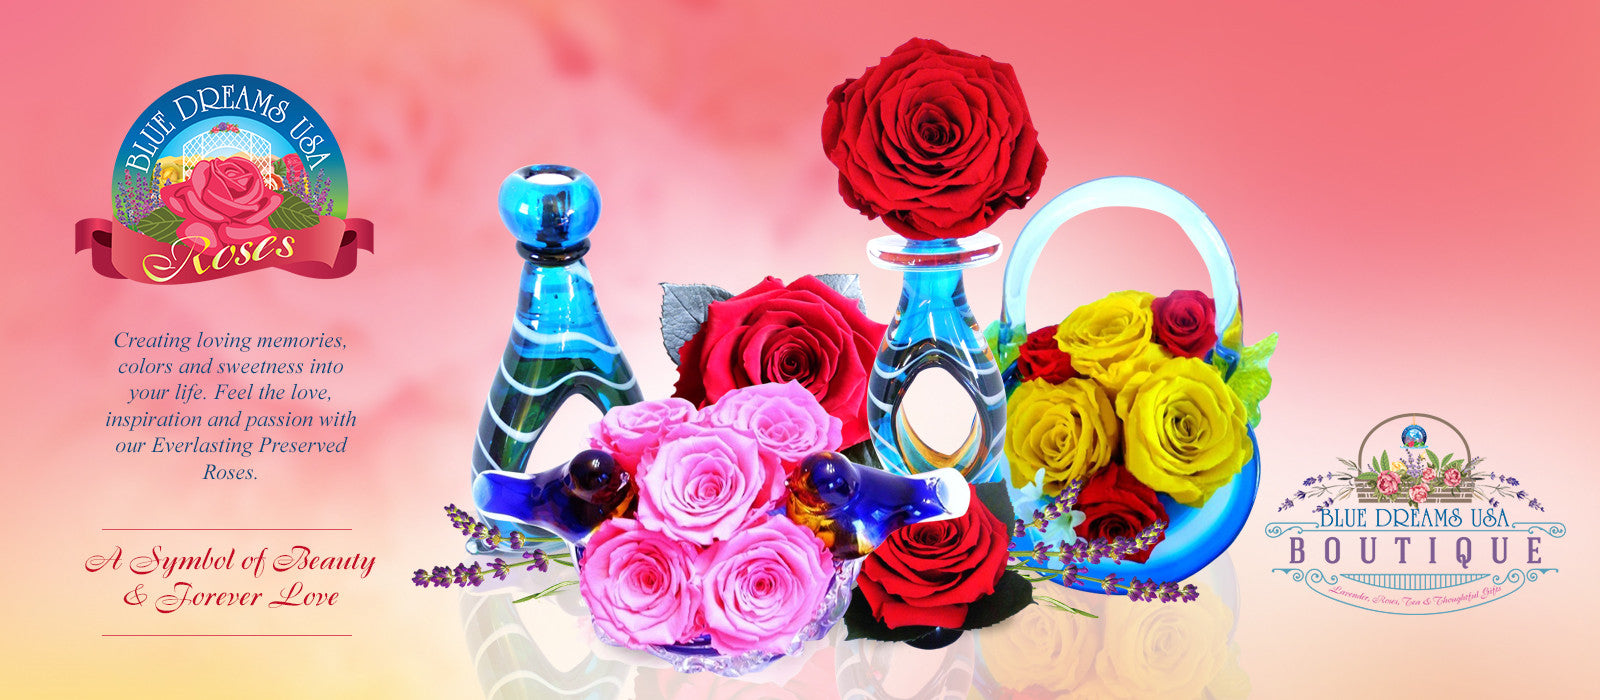 Blue Dreams USA Everlasting Rose Collection